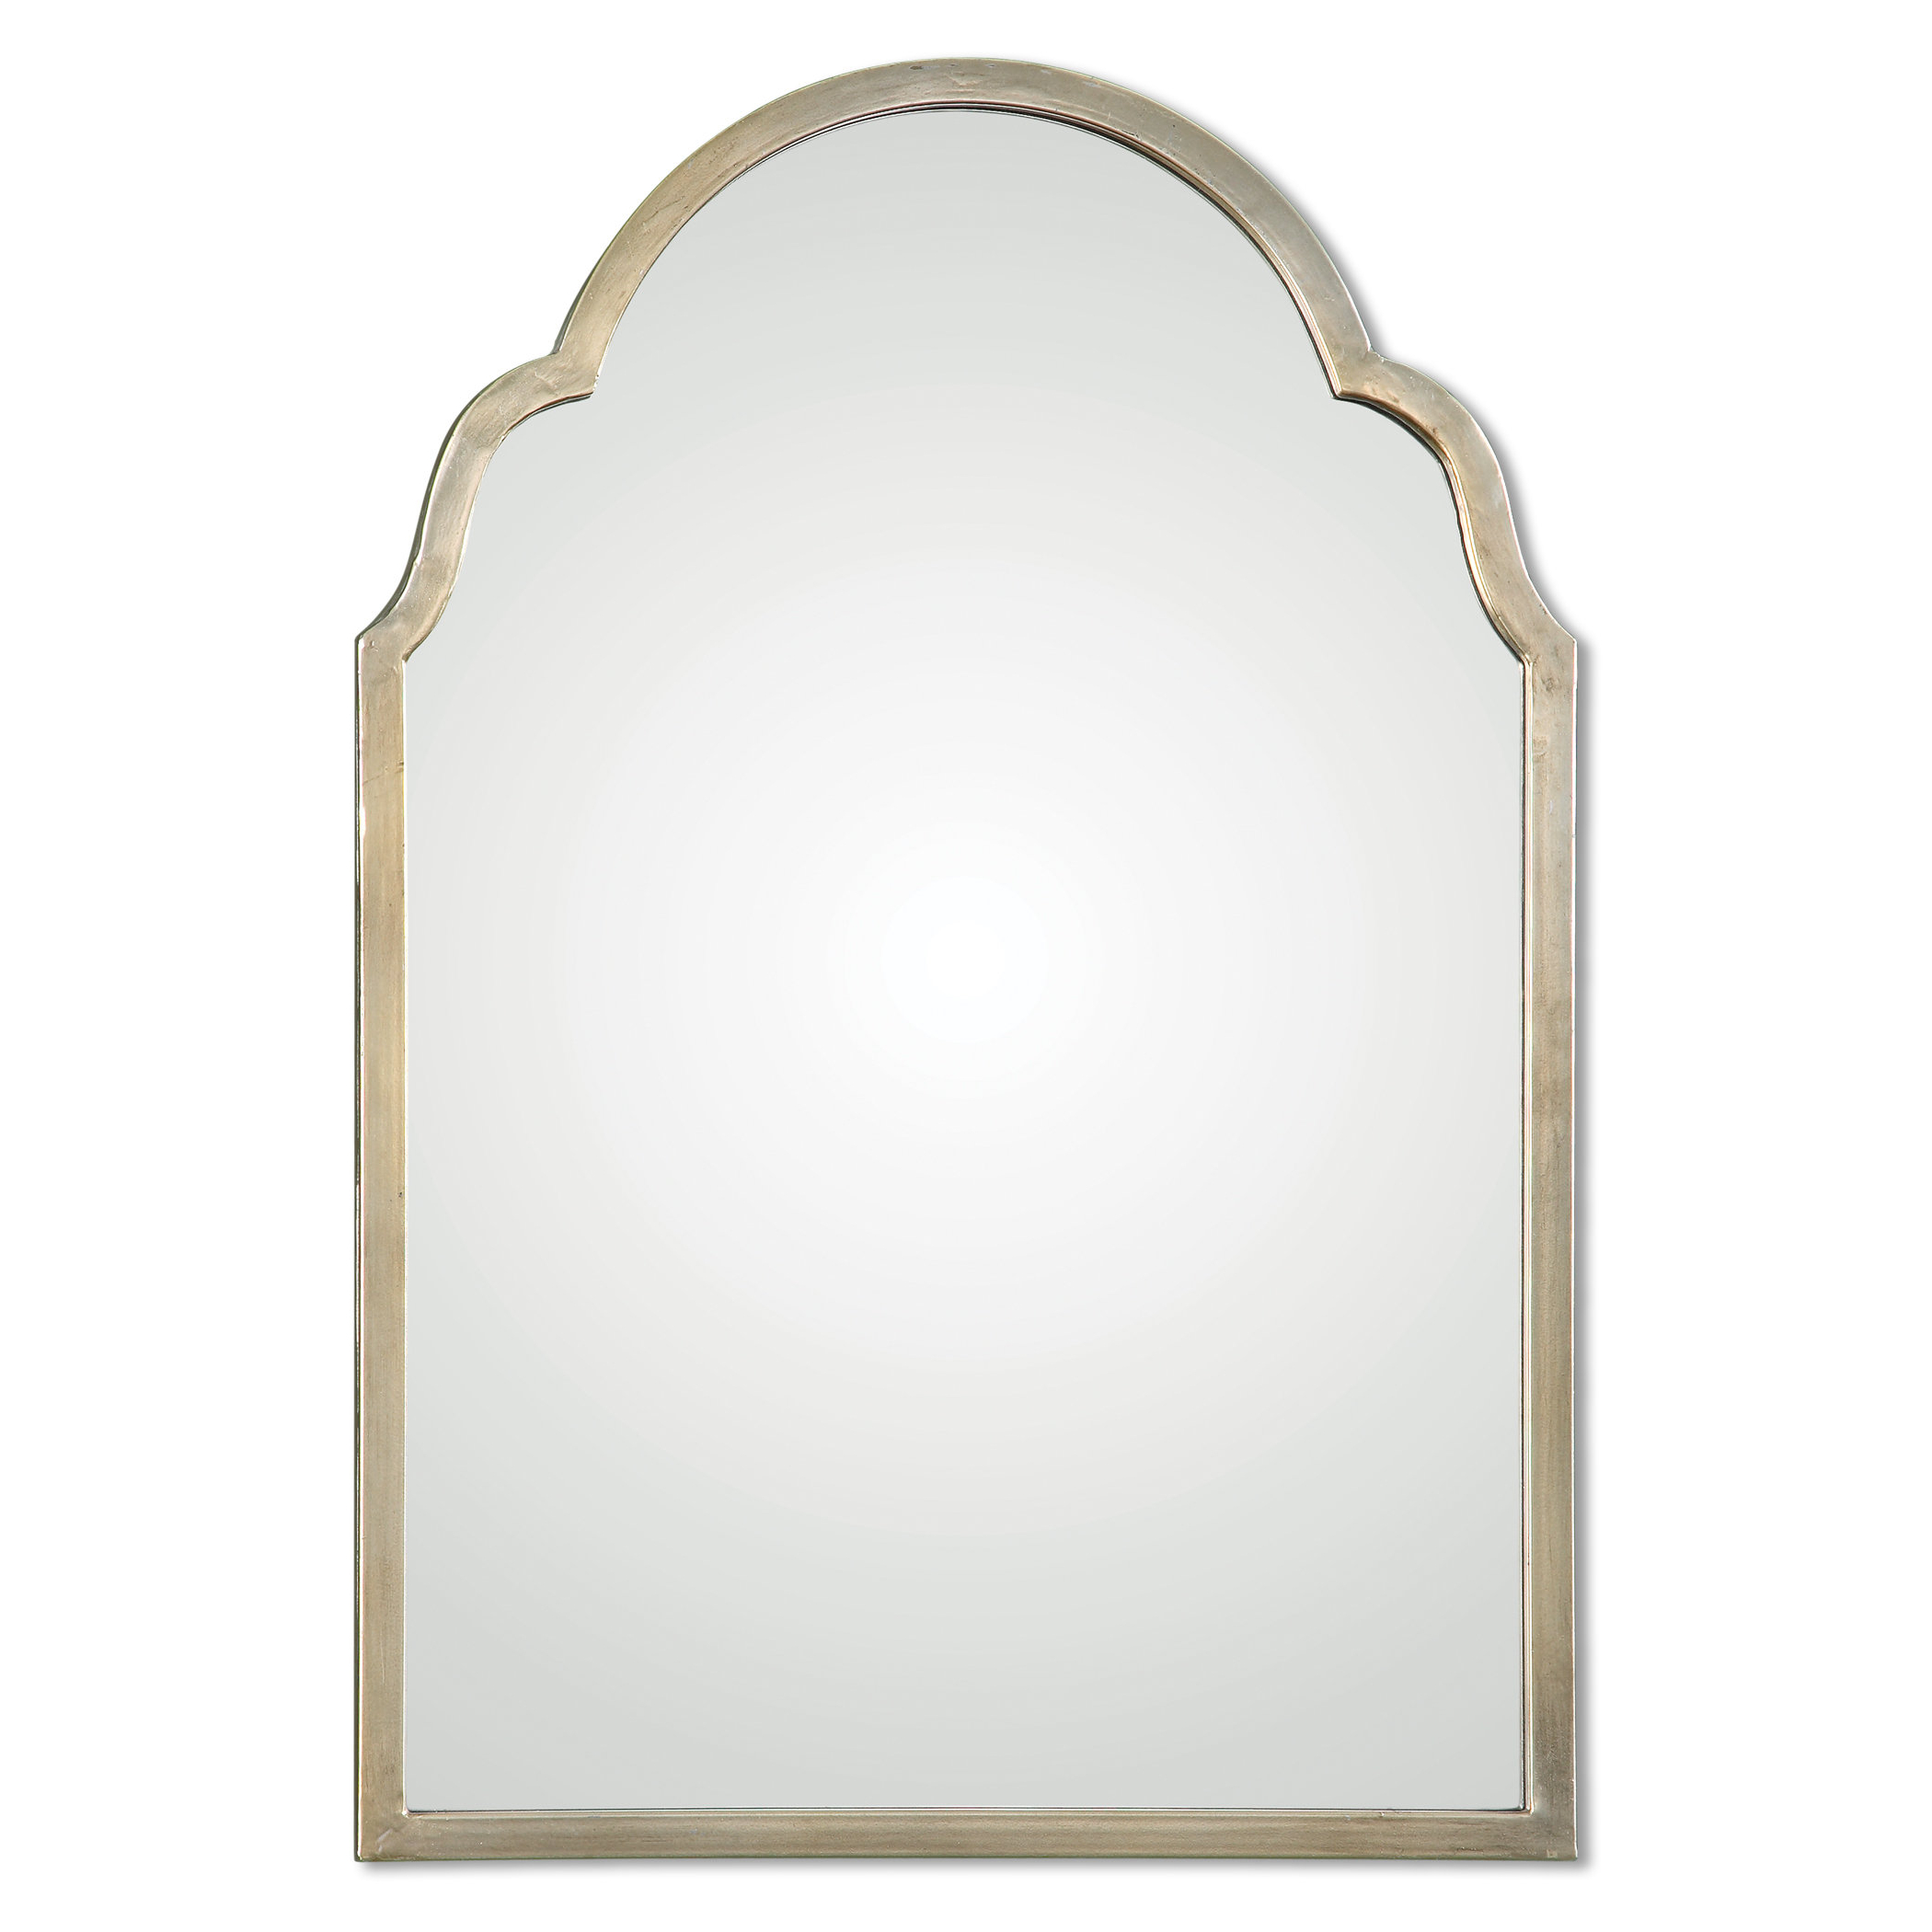 Luise Wall Mounted Rectangle Accent Mirror Design T In Current Moseley Accent Mirrors (View 13 of 20)